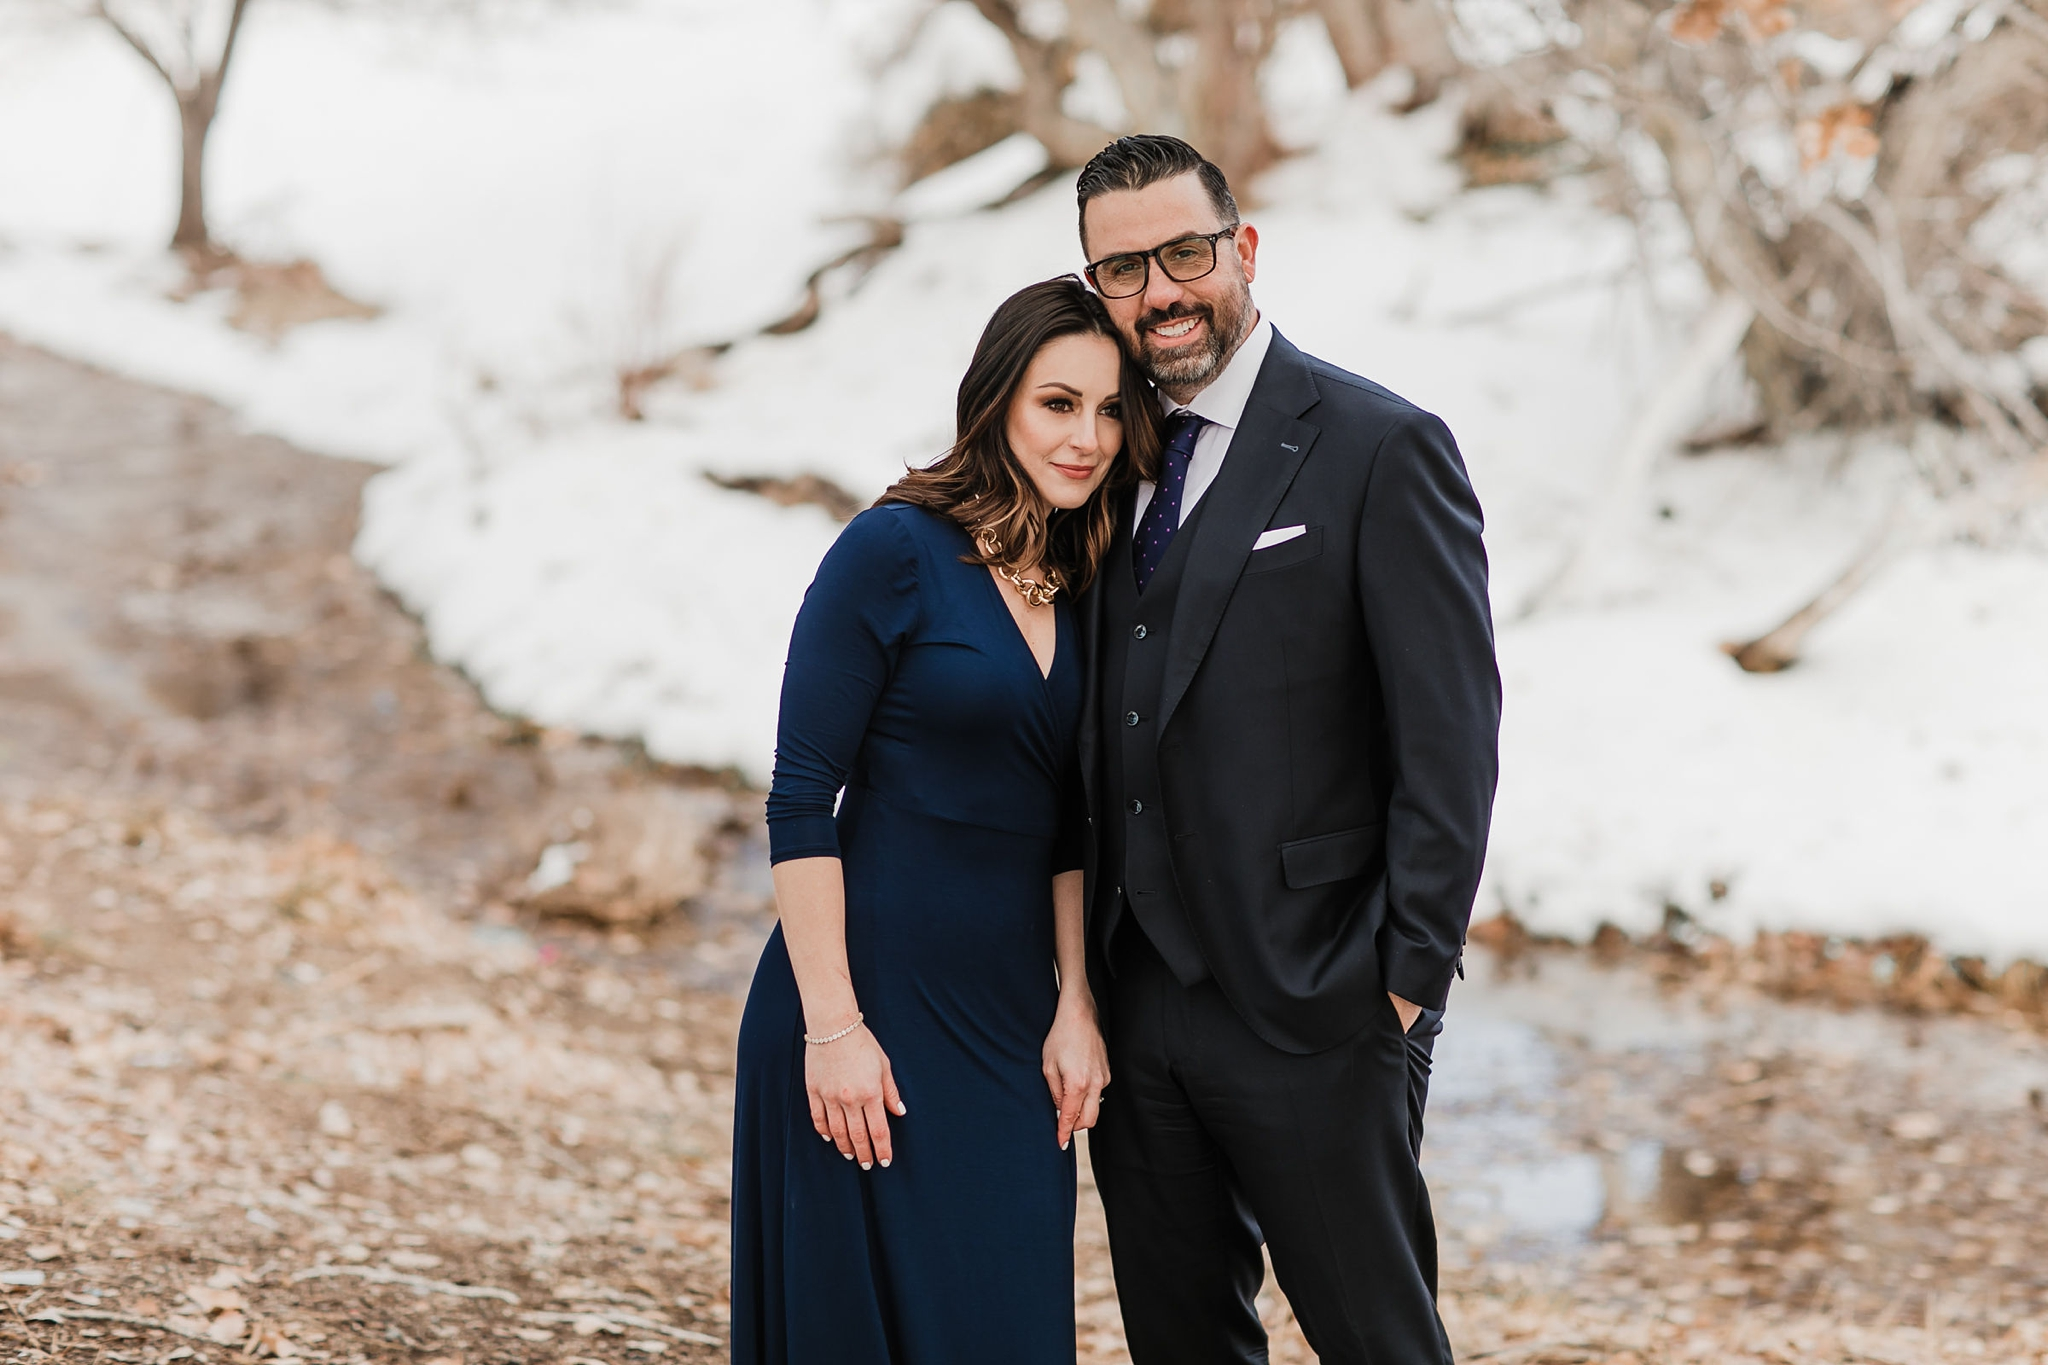 Alicia+lucia+photography+-+albuquerque+wedding+photographer+-+santa+fe+wedding+photography+-+new+mexico+wedding+photographer+-+new+mexico+wedding+-+engagement+-+winter+engagement+-+albuquerque+engagement_0013.jpg